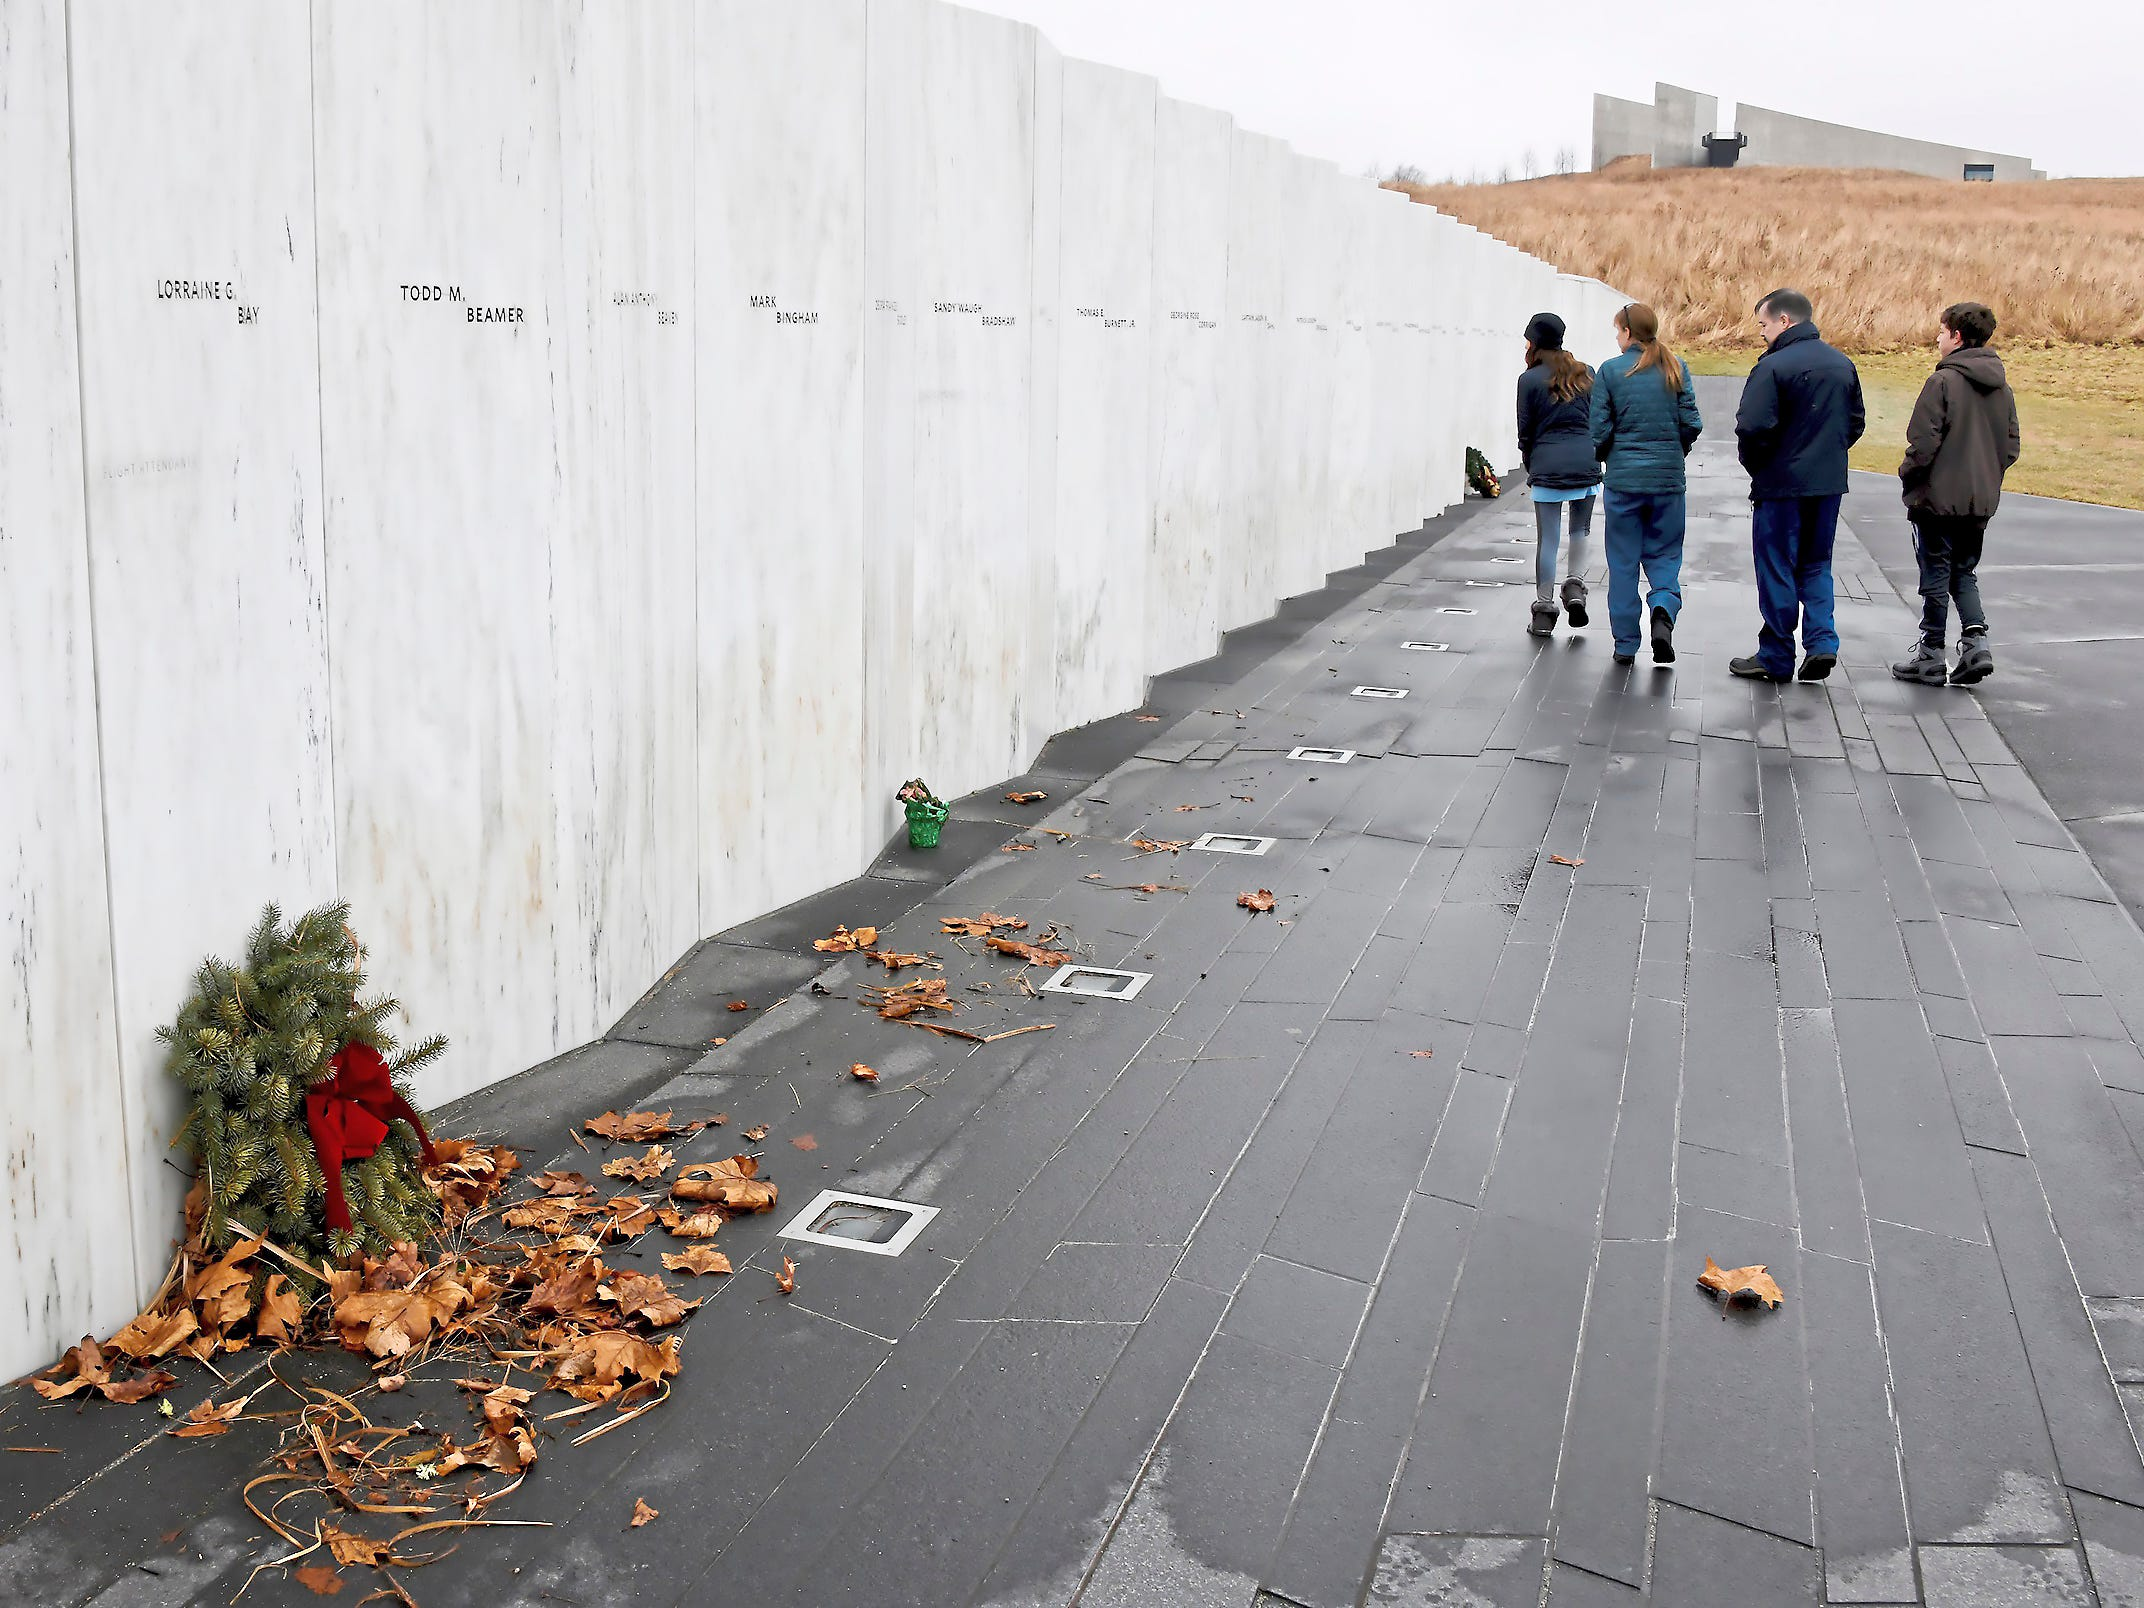 Visitors walk past the Wall of Names at the Flight 93 National Memorial near Shanksville, Pa. on Jan. 2, 2019. Signs were posted on all doors stating that the facilities were closed because of the government shutdown, but that the grounds are open from sunrise to sunset.